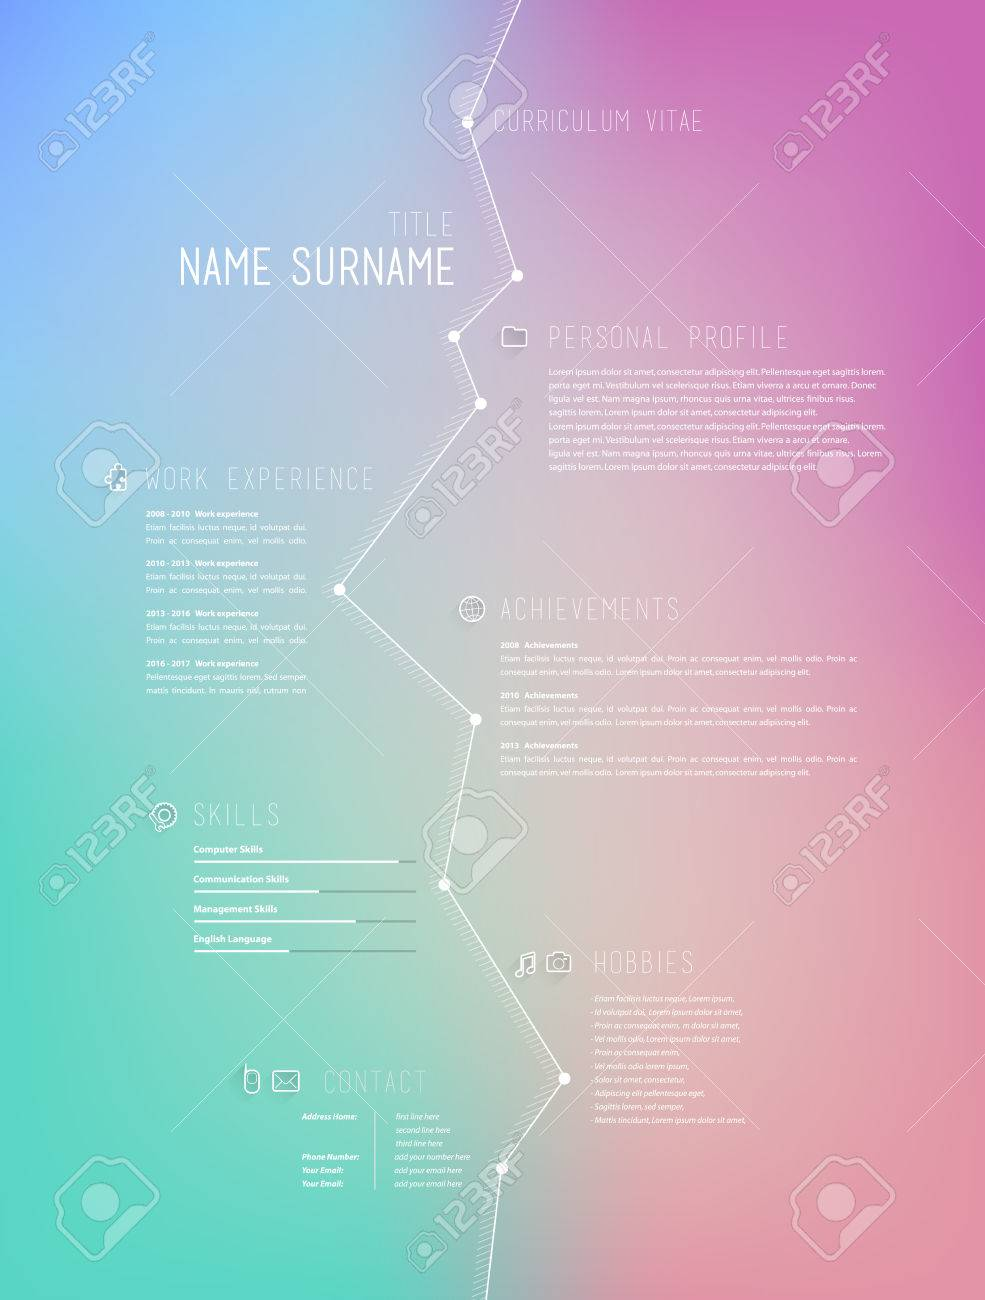 Creative Simple Curriculum Vitae Template On Colorful Background